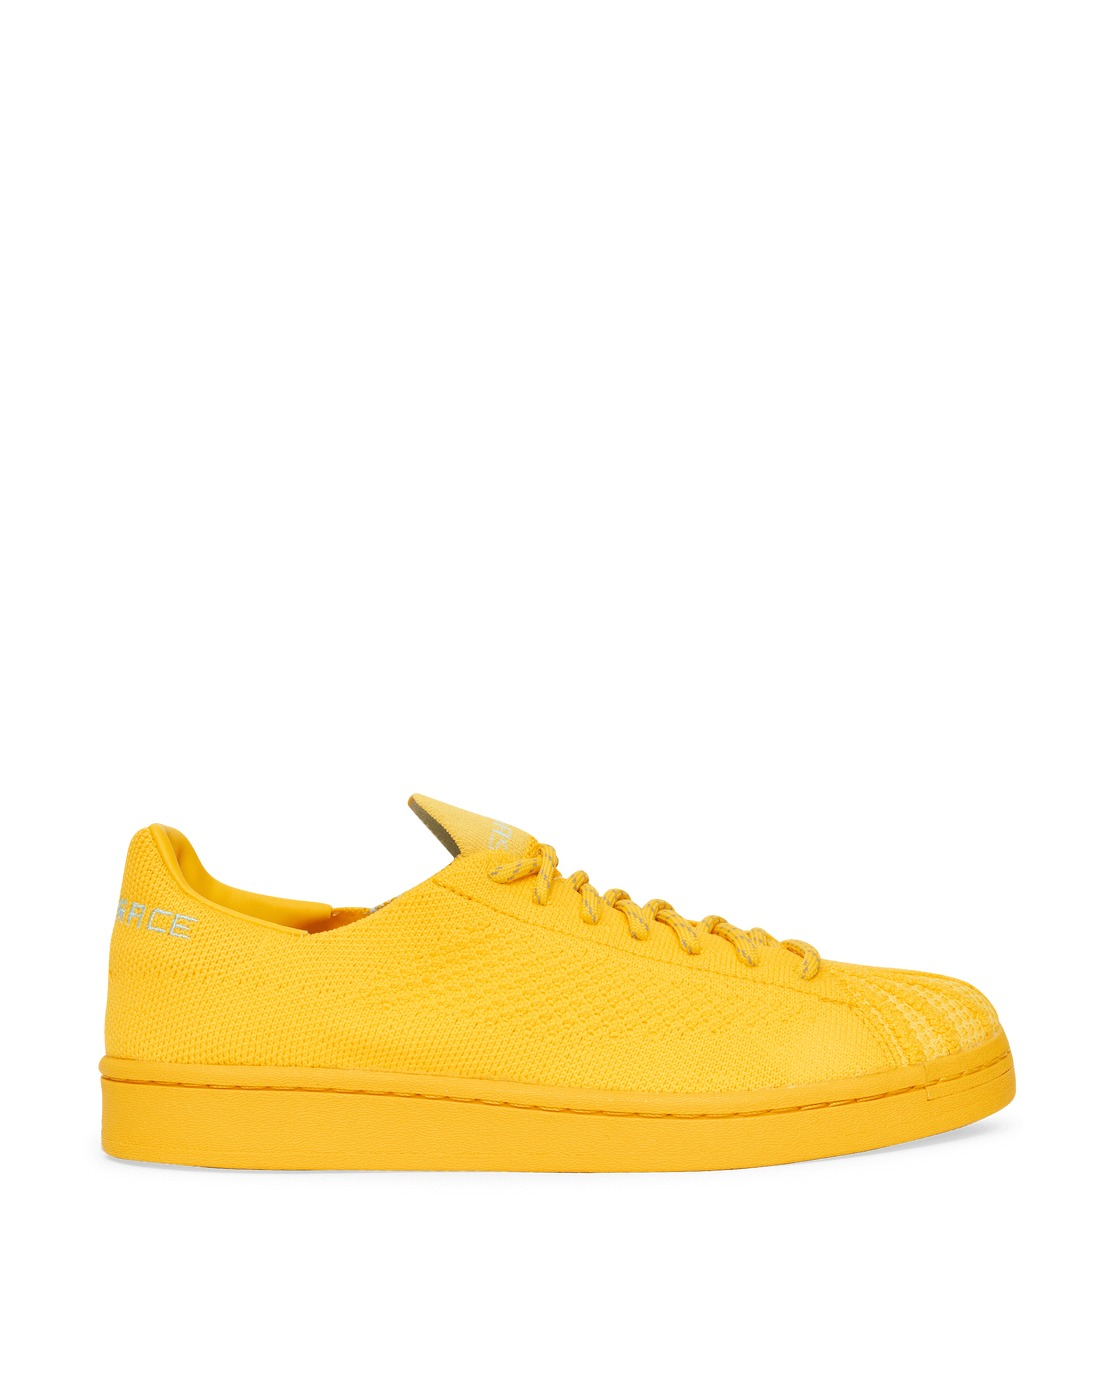 Adidas Originals Pharrell Williams Pk Sneakers Gold